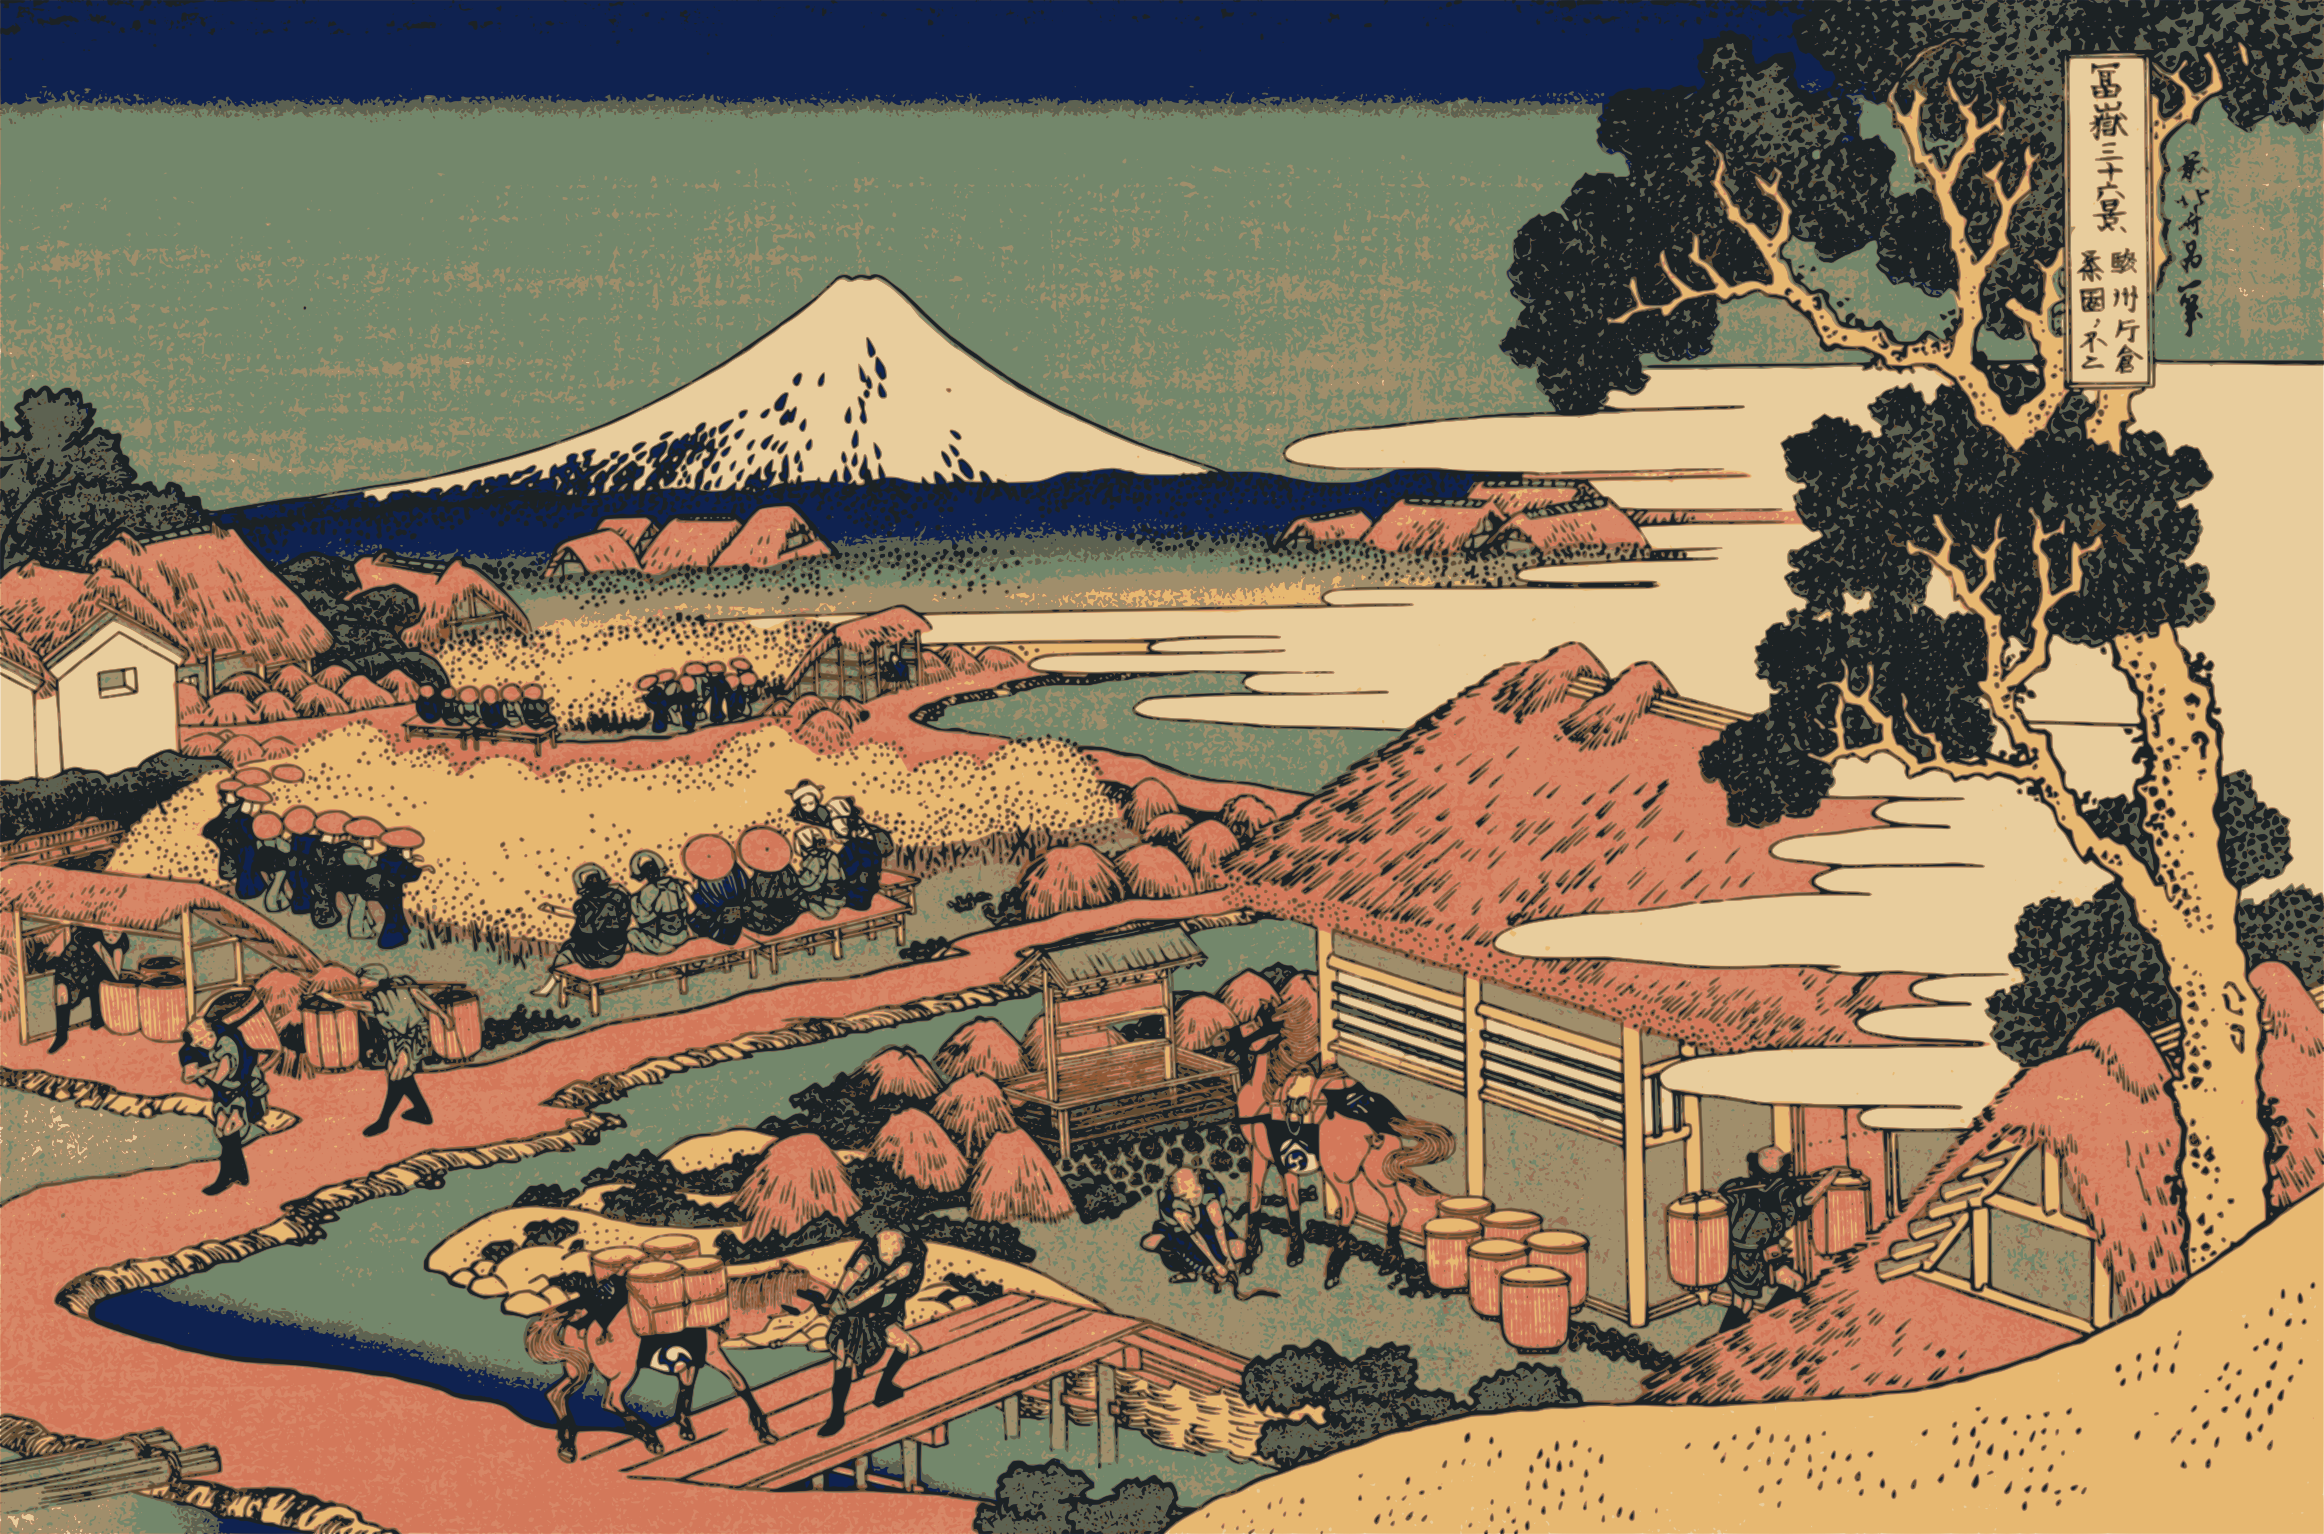 Hokusai-Mount Fuji-36-Views-30 by yamachem2